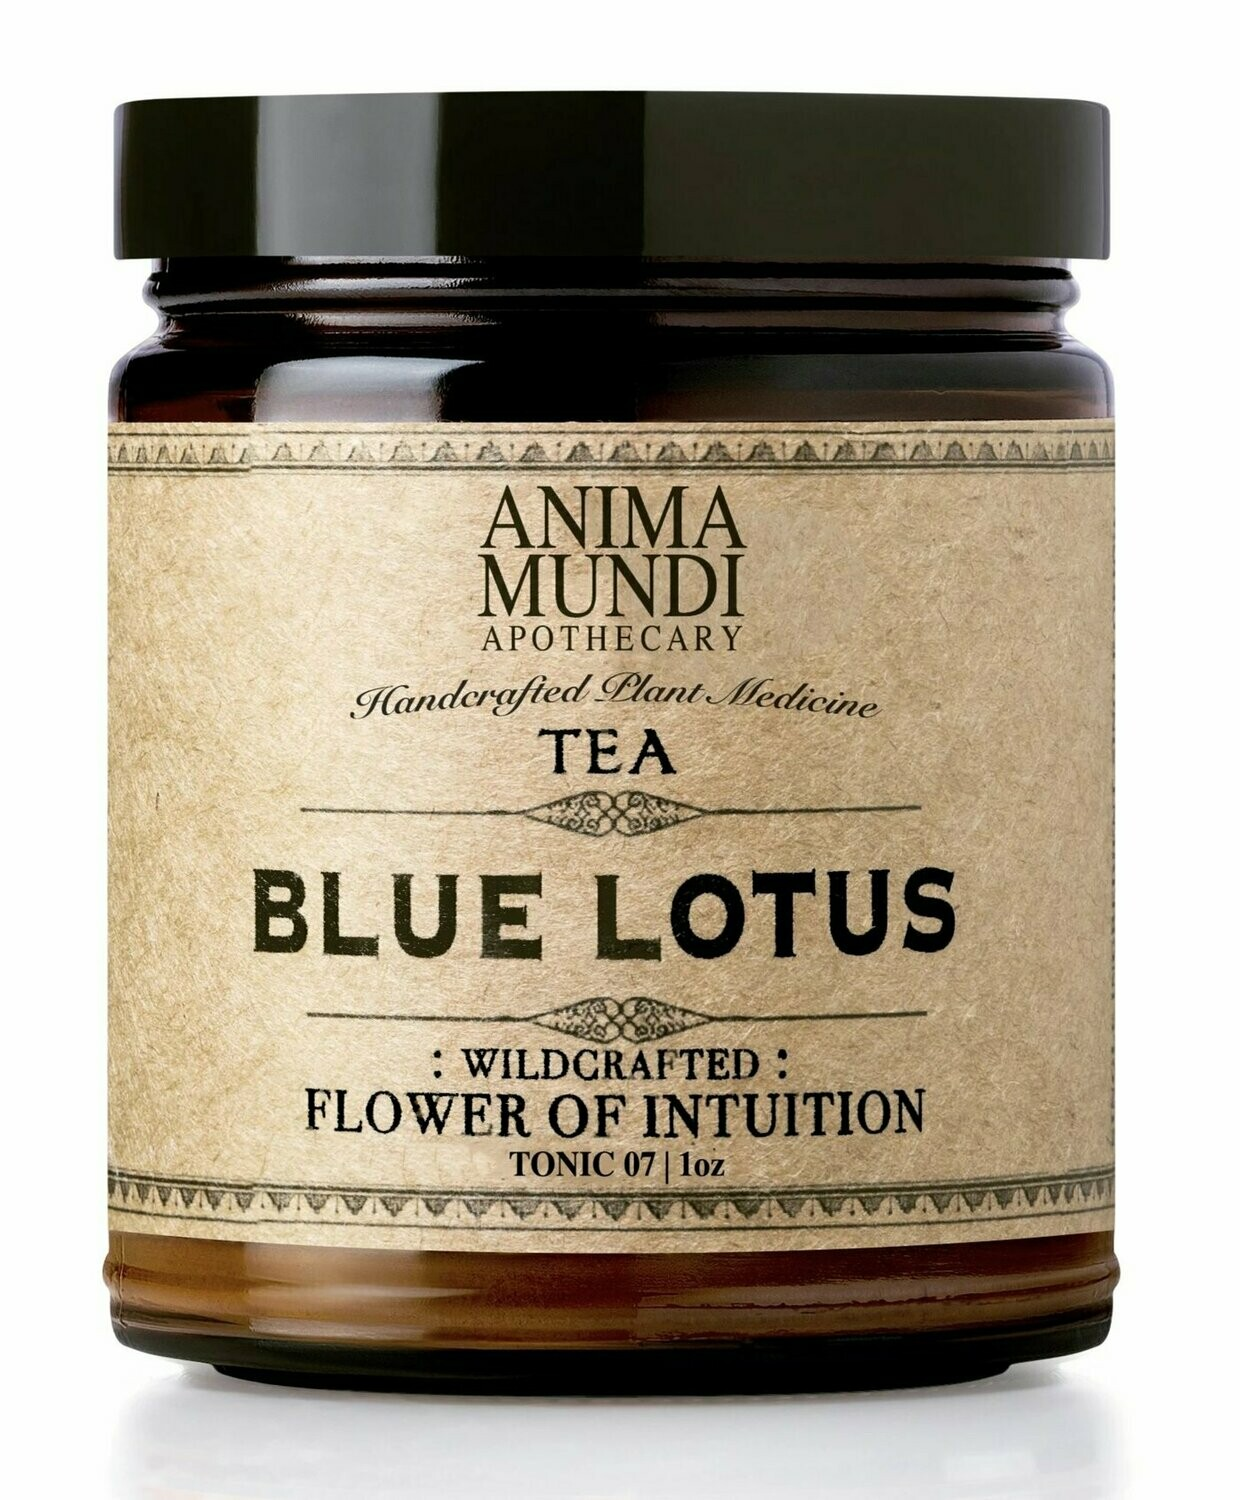 BLUE LOTUS / FLOWER OF INTUITION